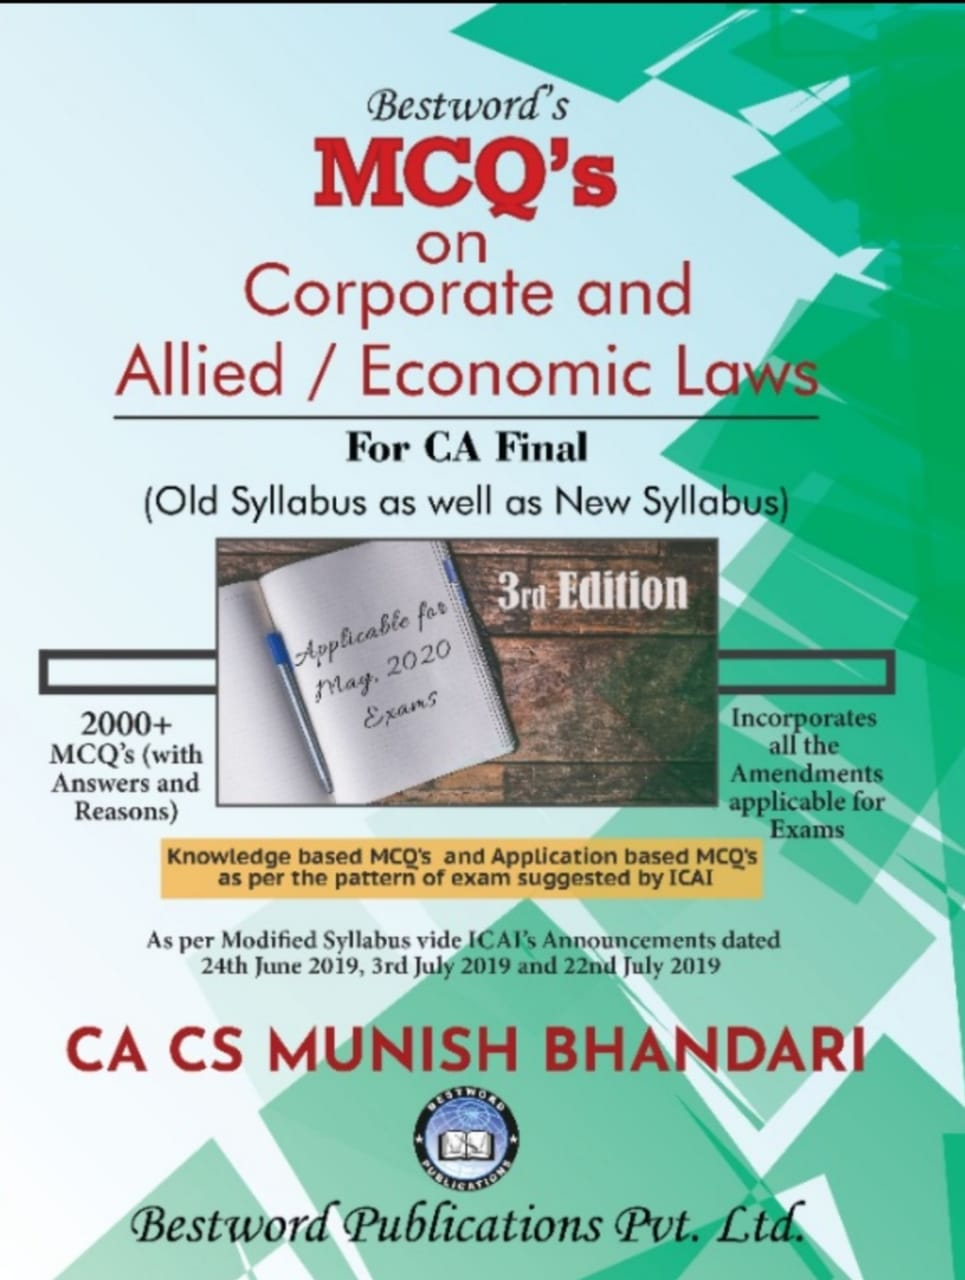 bestword's-mcqs-on-corporate-and-allied-laws-and-economic-laws---by-ca-cs-munish-bhandari---3rd-edition---for-ca-(final)-may,-2020-exams-(old-as-well-as-new-syllabus)